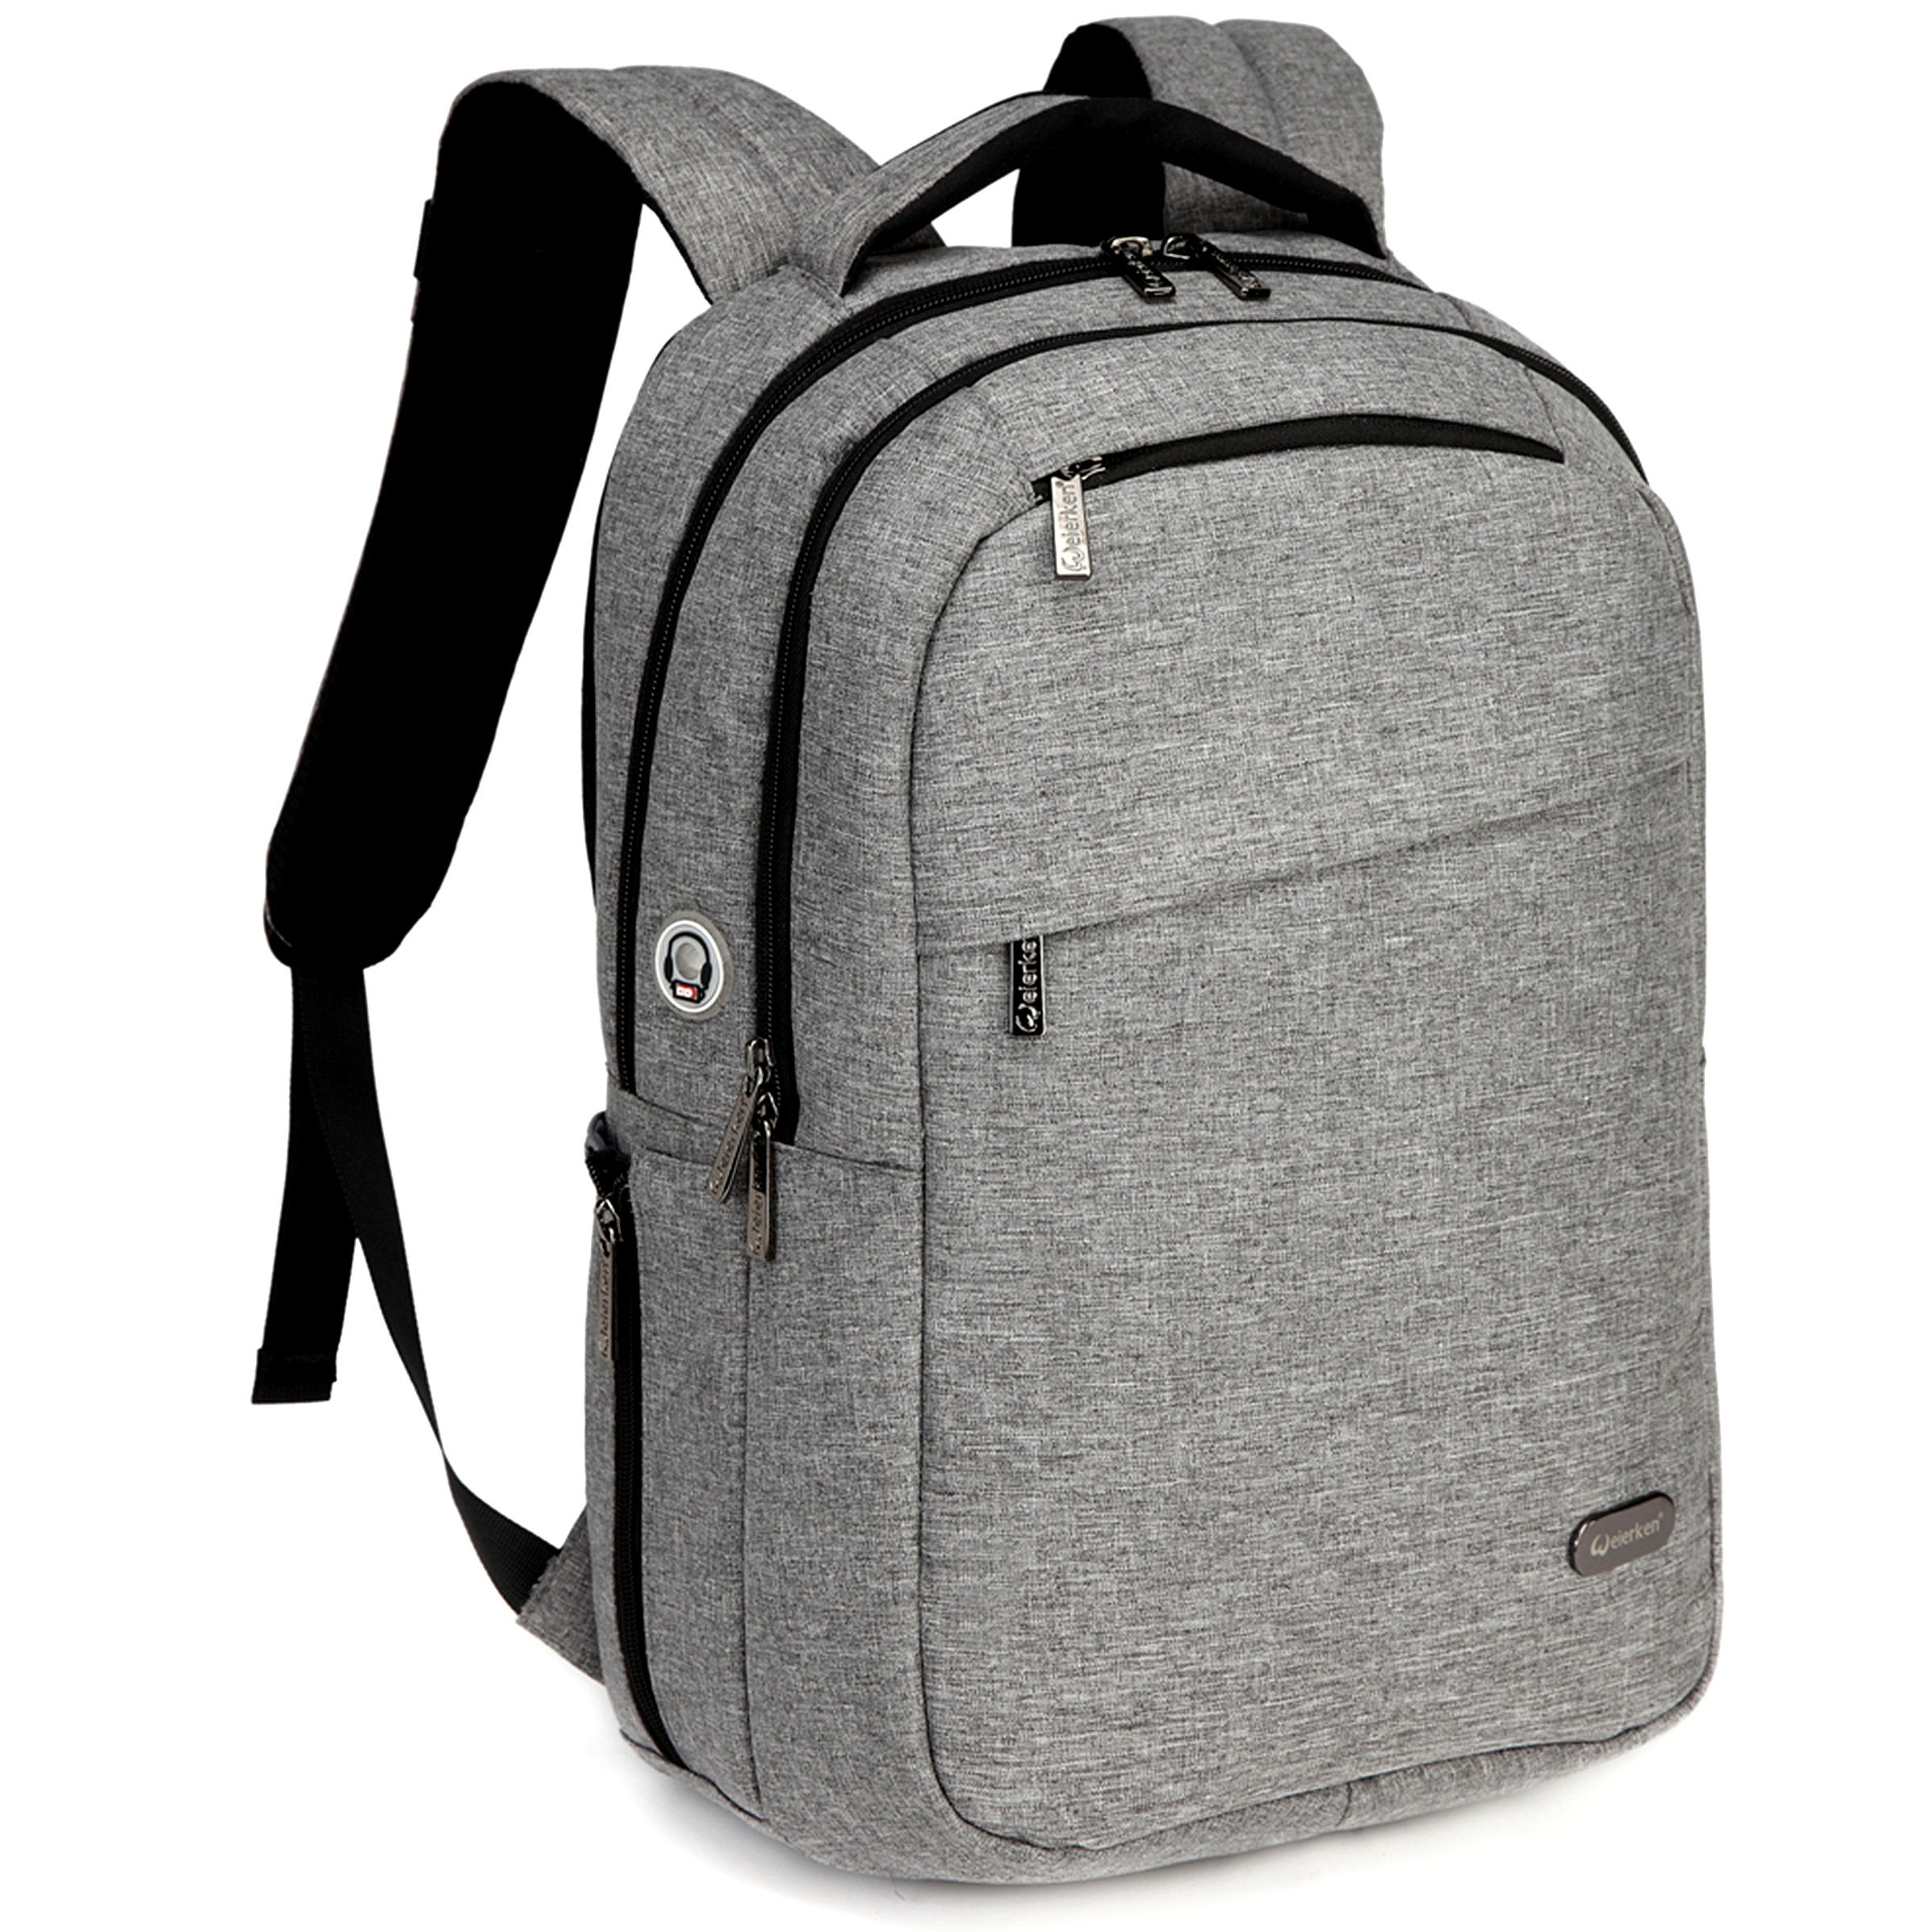 Lightweight Laptop Backpack, Slim Computer Bag, Waterproof College School Daypack, Eco-Friendly Travel Shoulder Bag with USB Charging Port,Fits Under 17 and 15.6 Inch Laptop,(Gray)